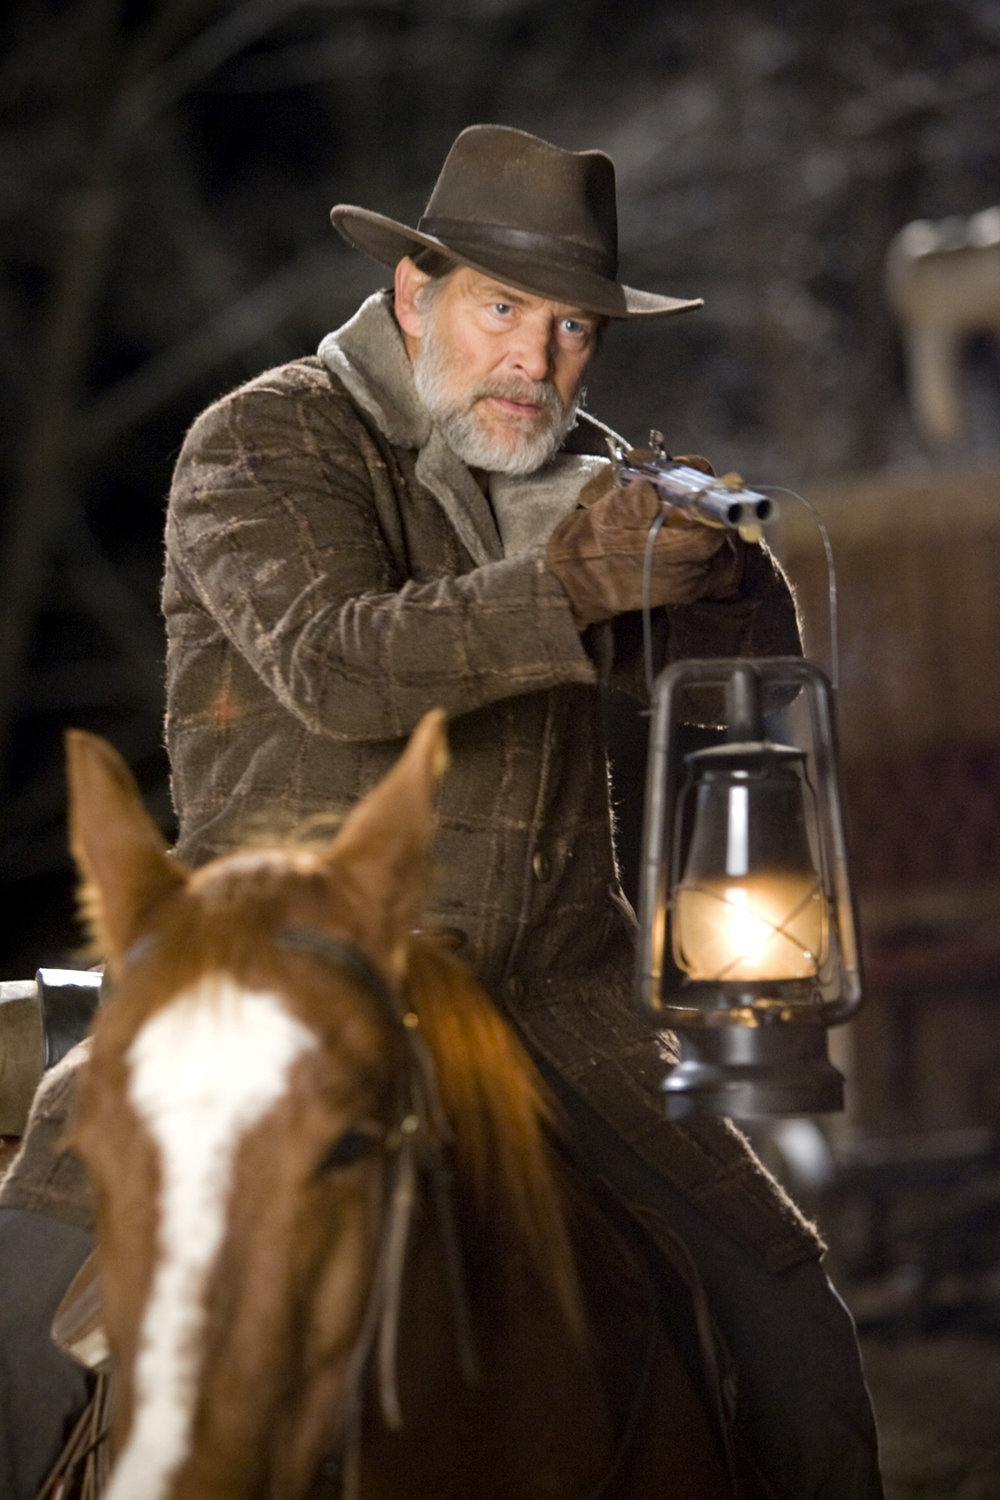 Django-Unchained-49-James-Remar.jpg